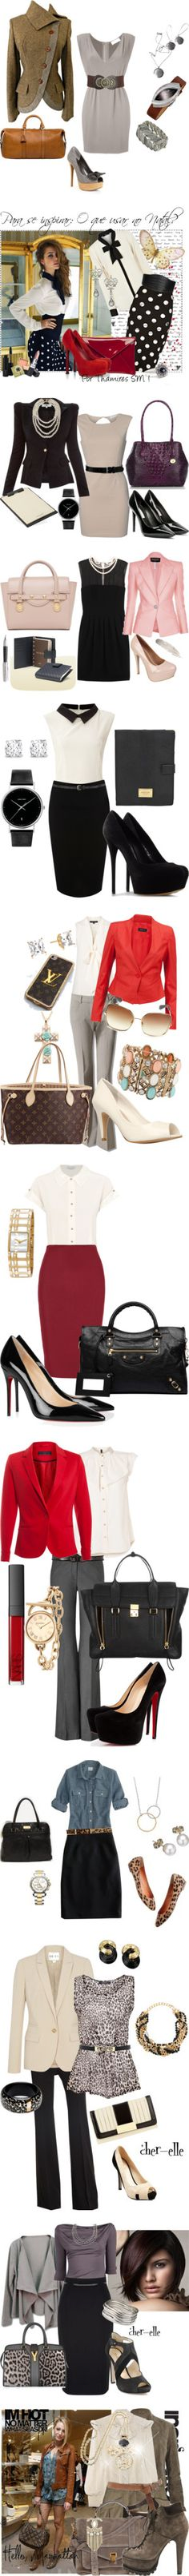 """""""Outfits para ir a trabajar IV"""" by guisella-infantes ❤ liked on Polyvore"""